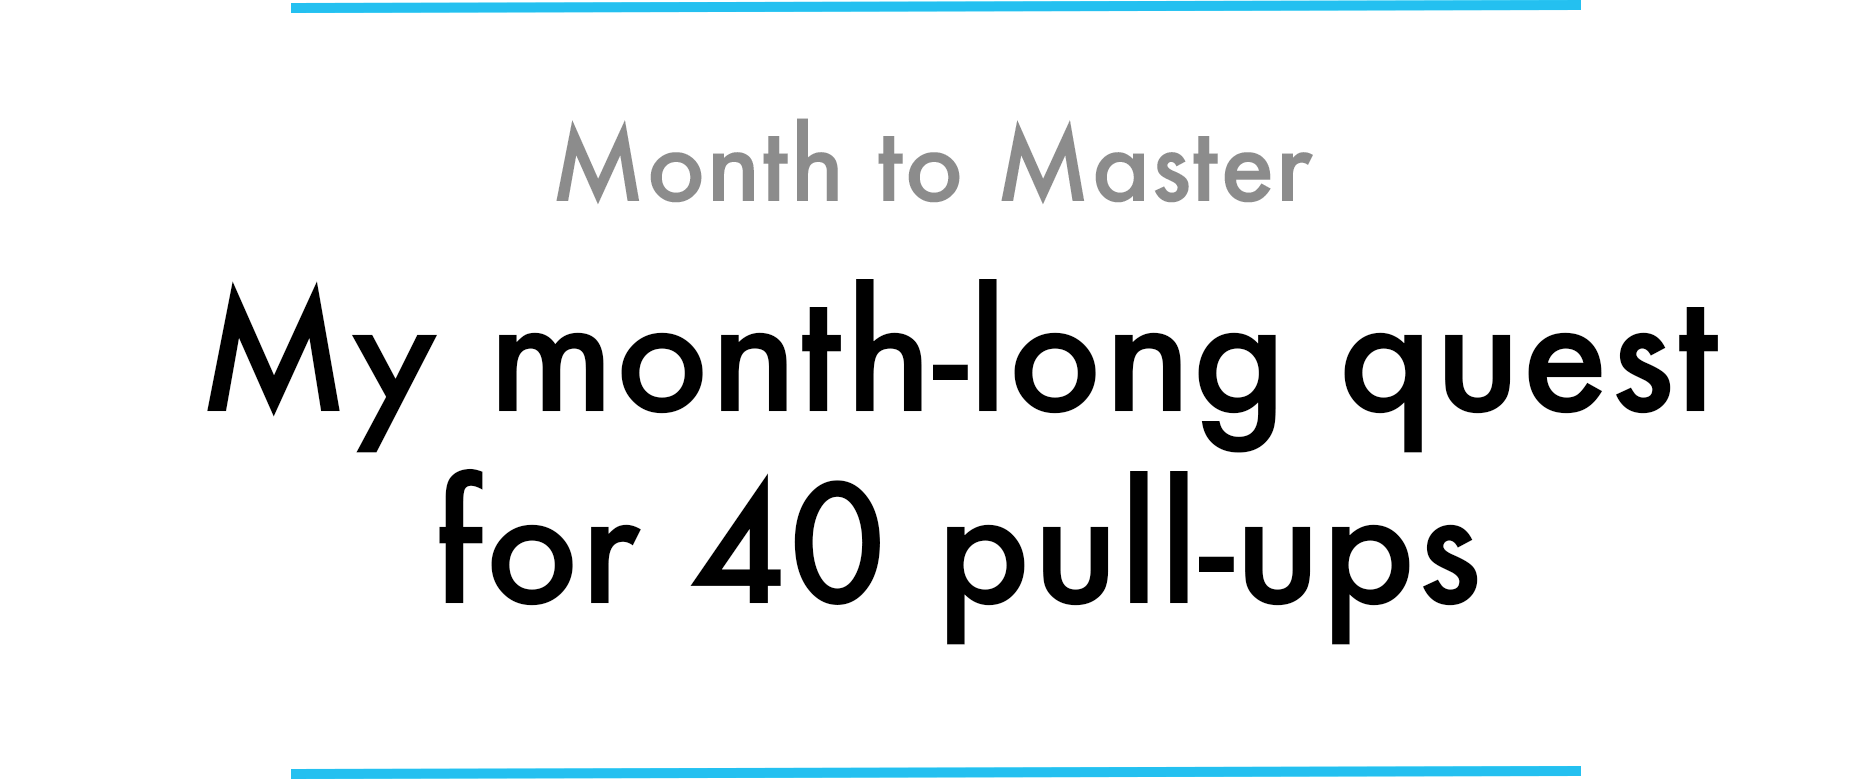 My month-long quest for 40 pull-ups - Max Deutsch - Medium